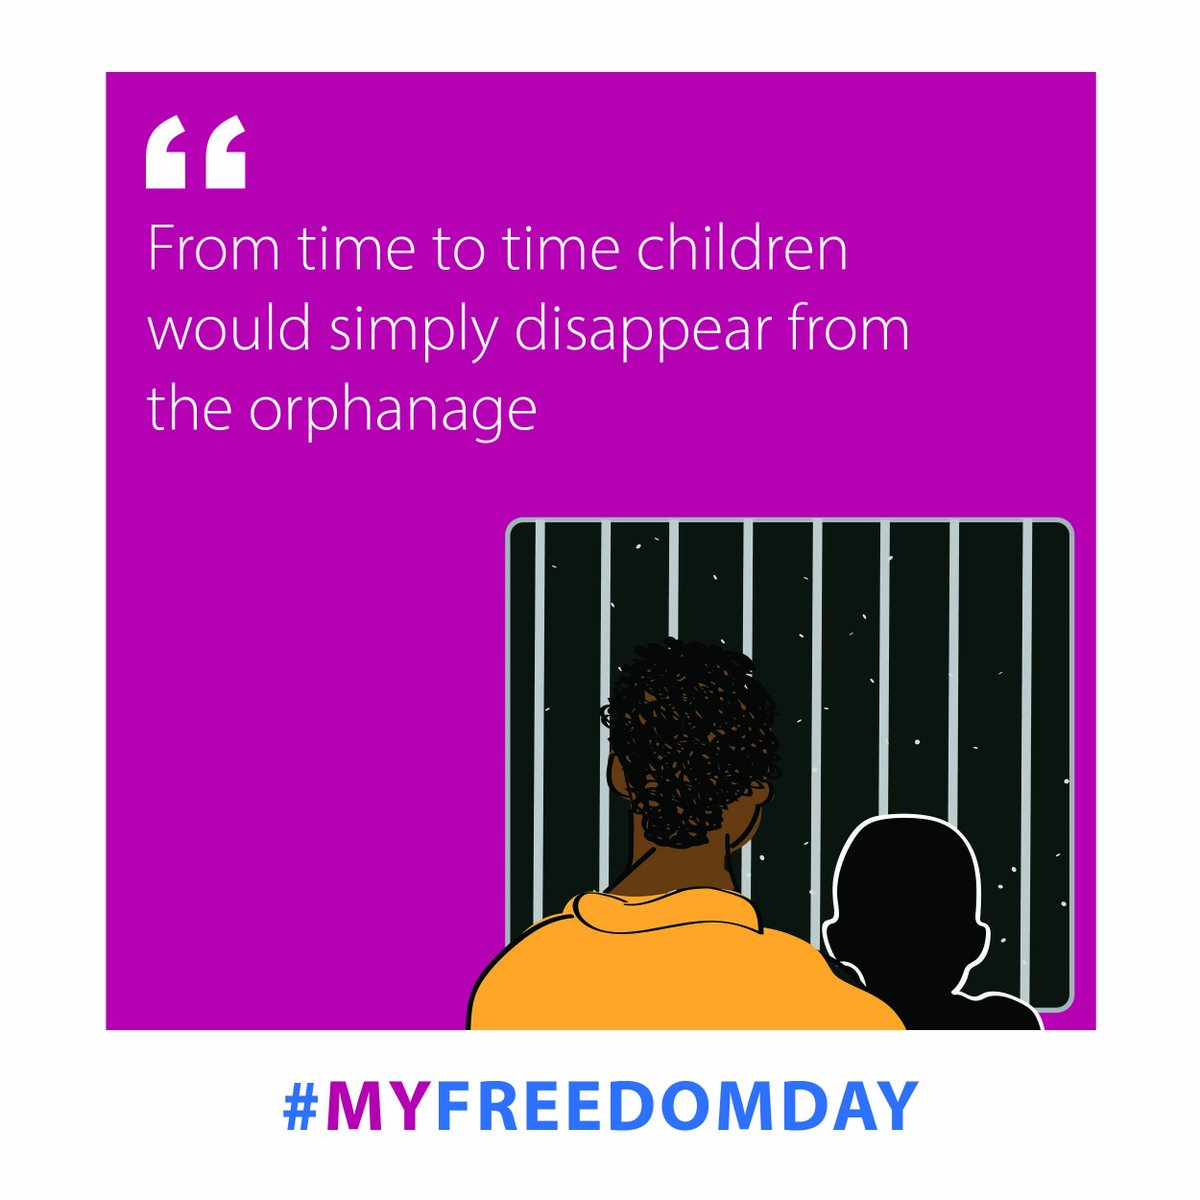 Many orphanages traffic and exploit the children they are supposed to be caring for. Learn more here #MyFreedomDay bit.ly/2Ducxni